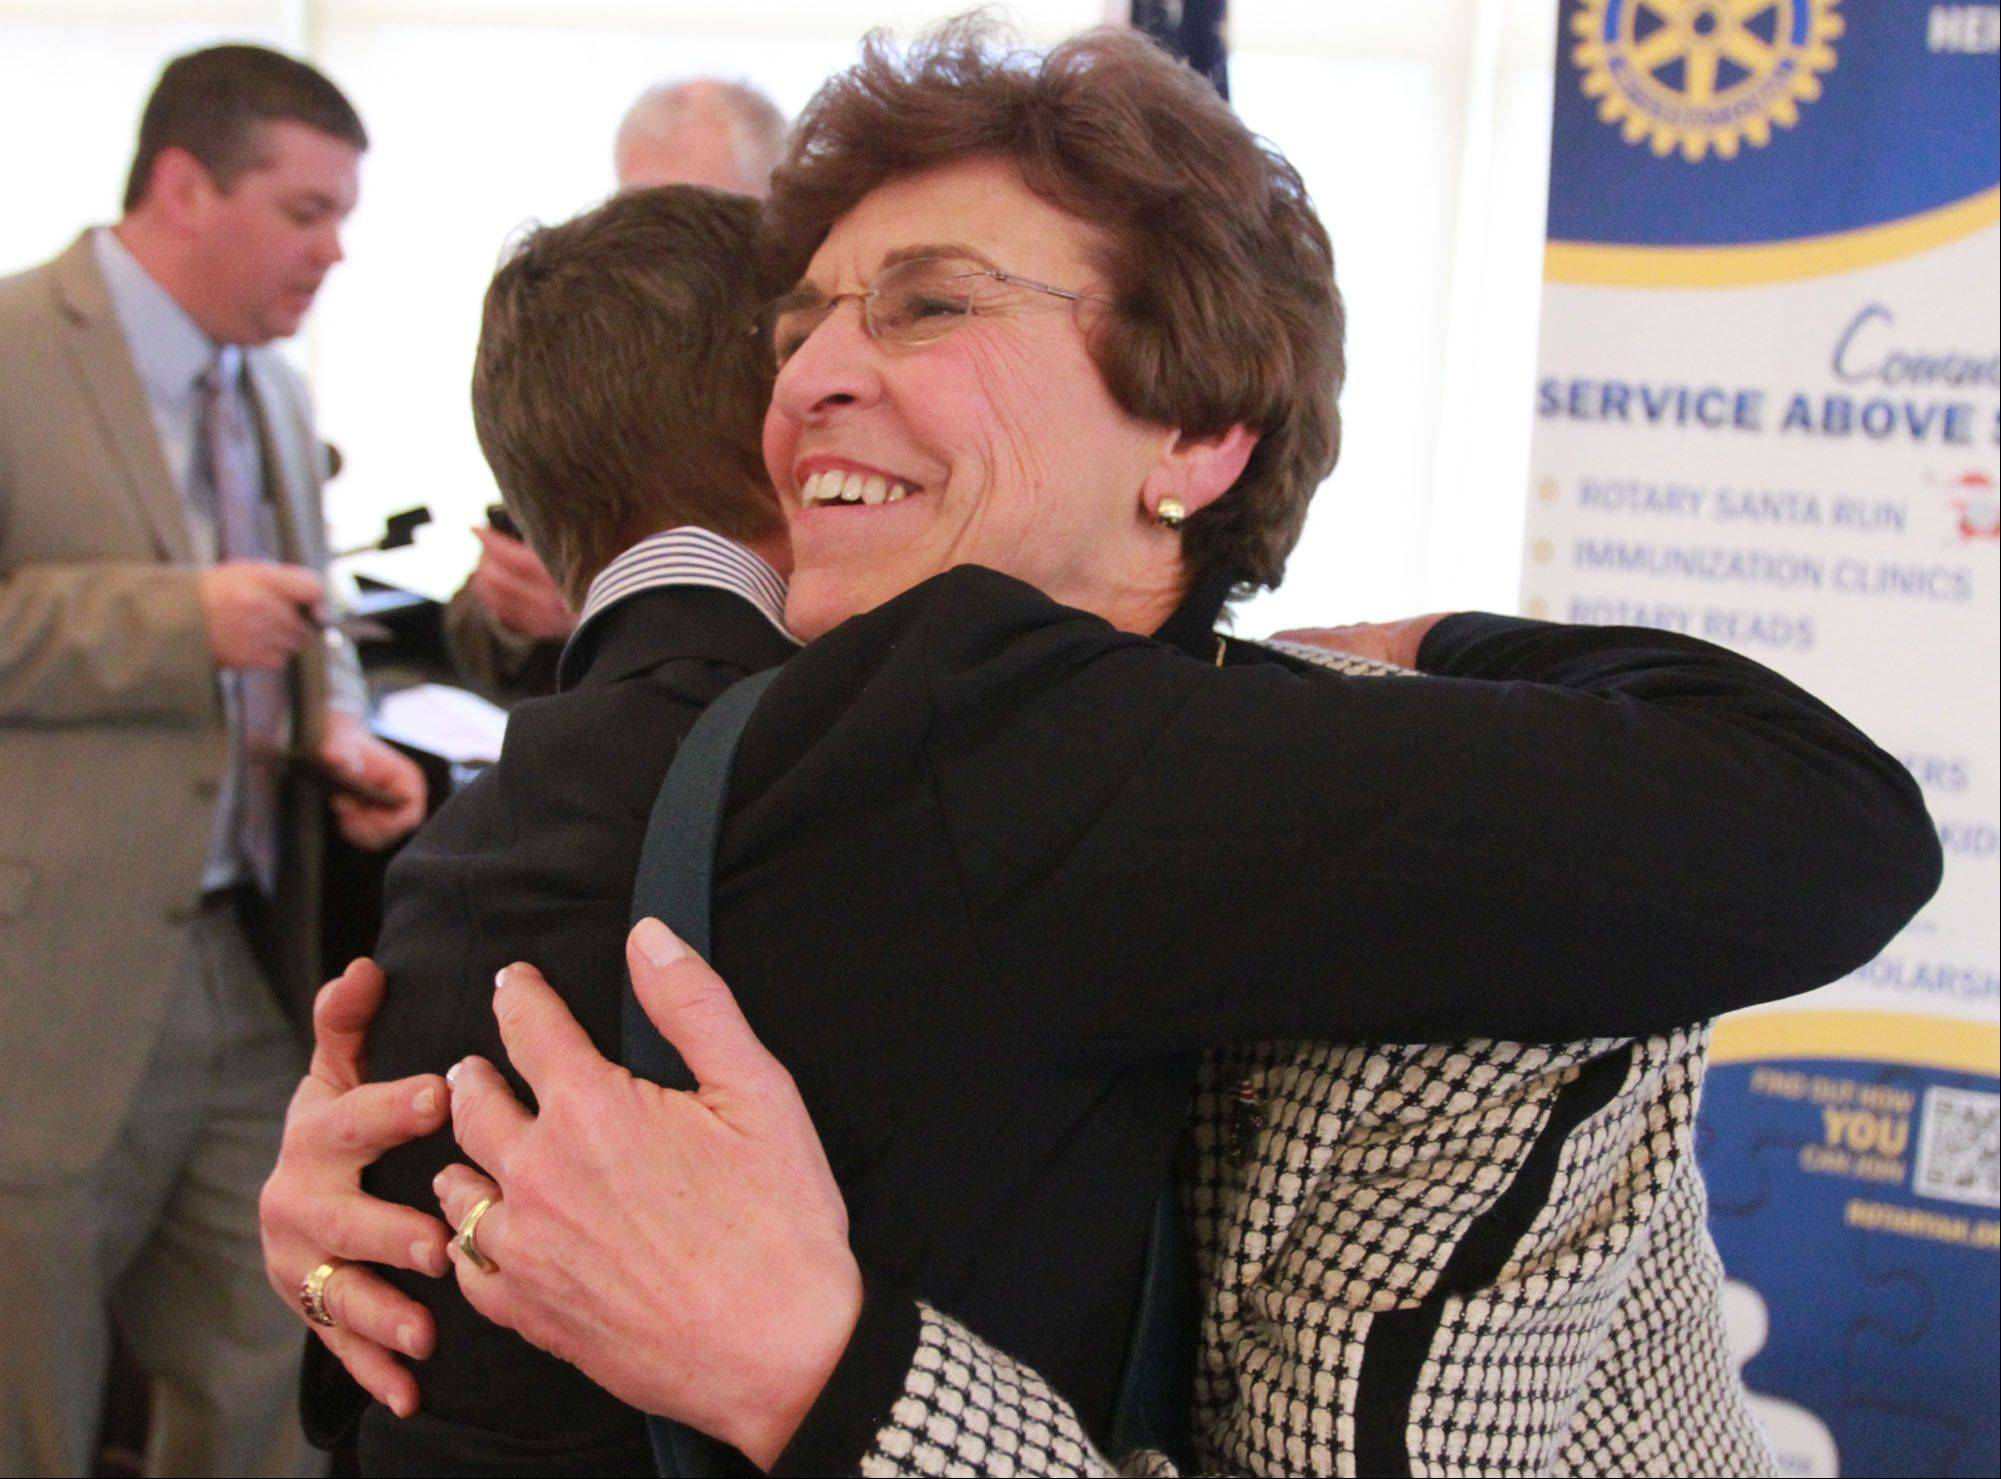 Arlington Heights Mayor Arlene Mulder hugs Linda Borton, Arlington Heights Rotary vice president, after her last State of the Village speech.